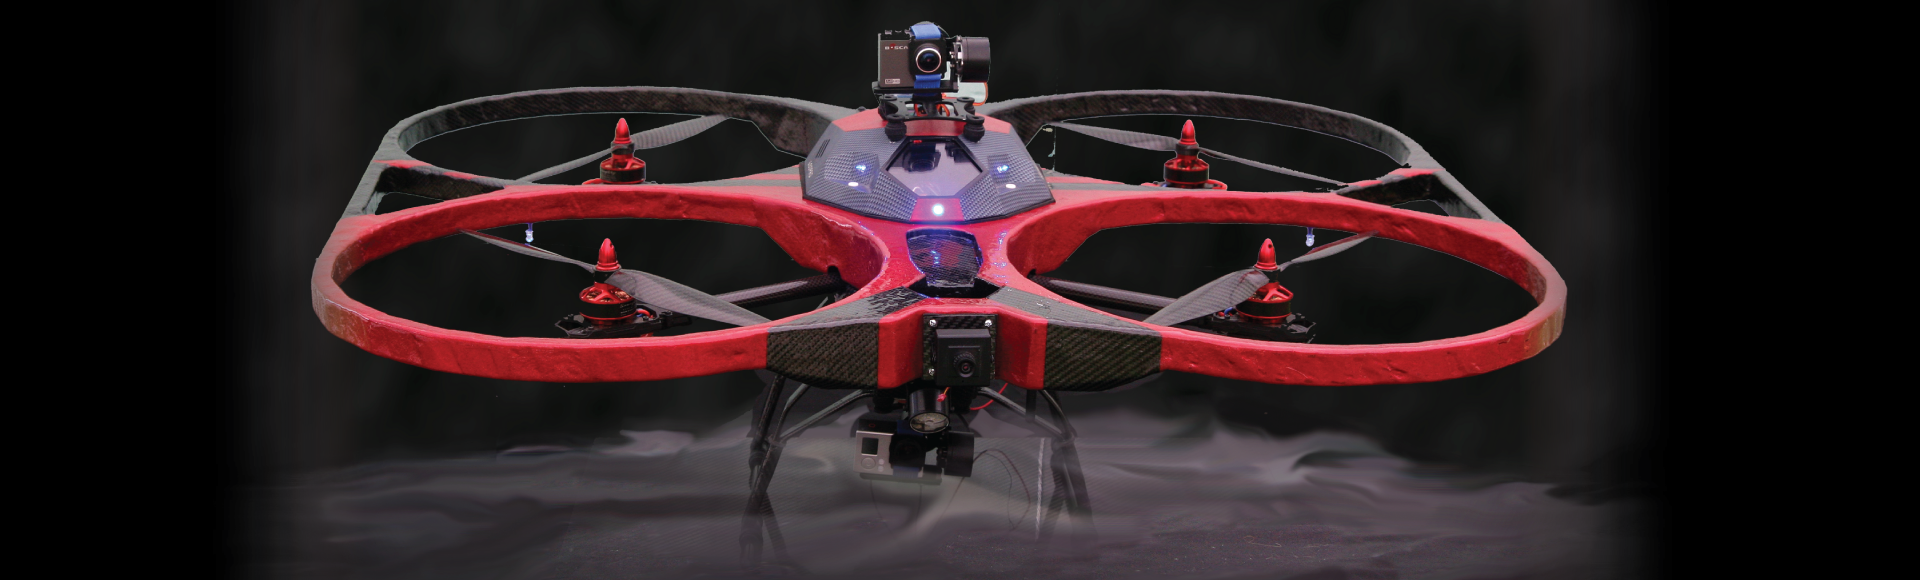 Mobile Recon Systems KittyHawk Quadcopter